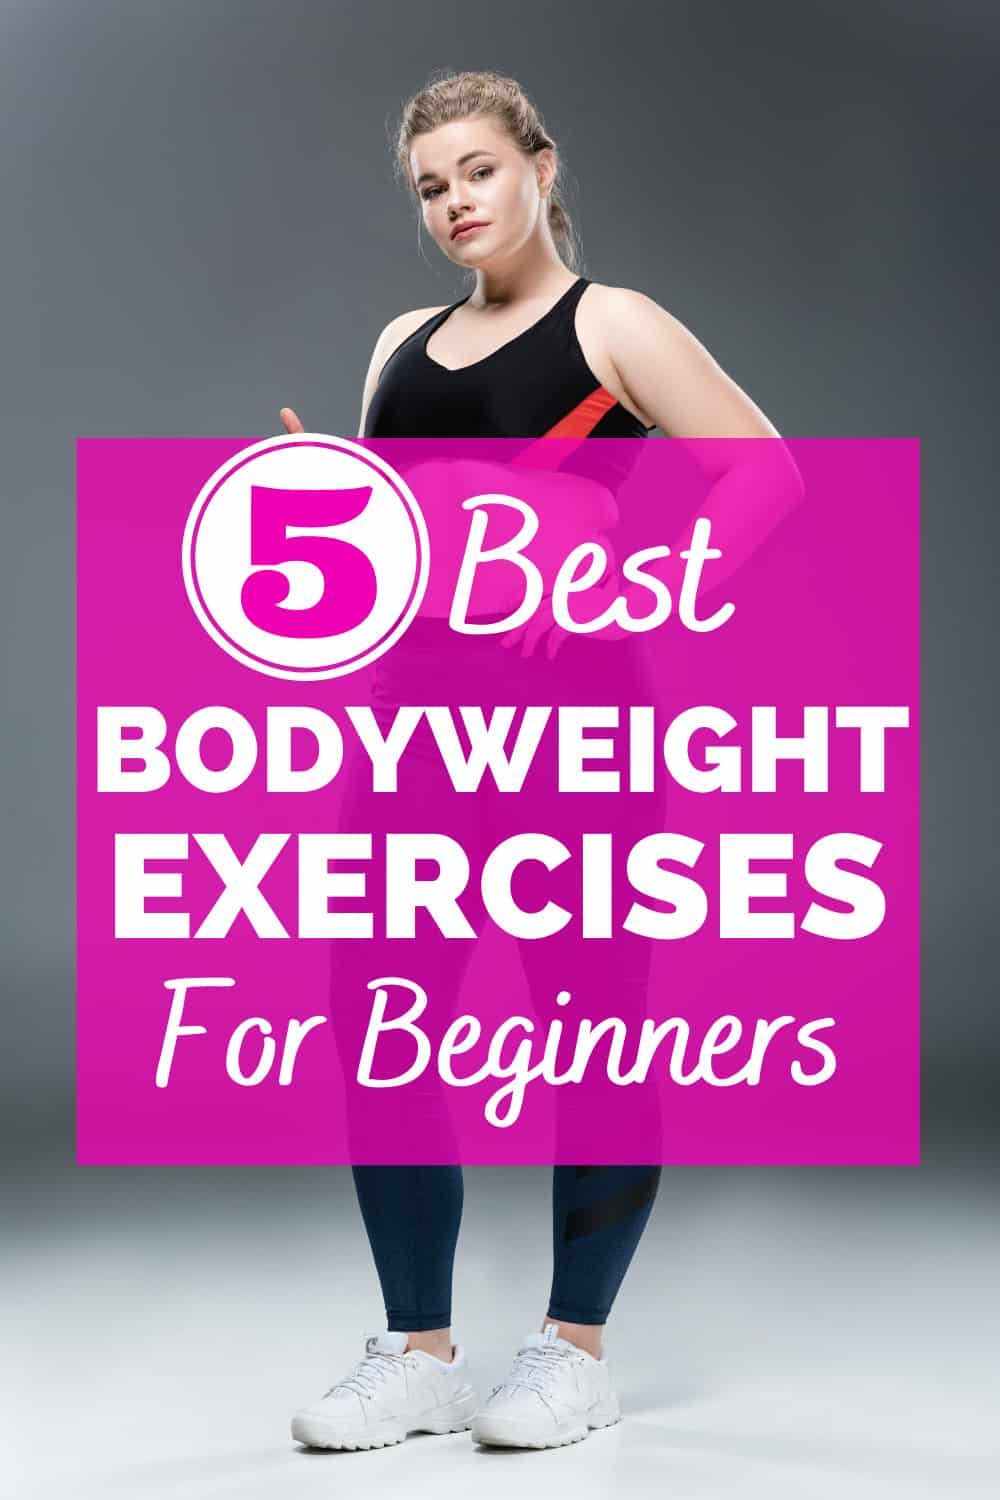 a curvy woman dressed in workout clothes with a text overlay that says best bodyweight exercises for beginners